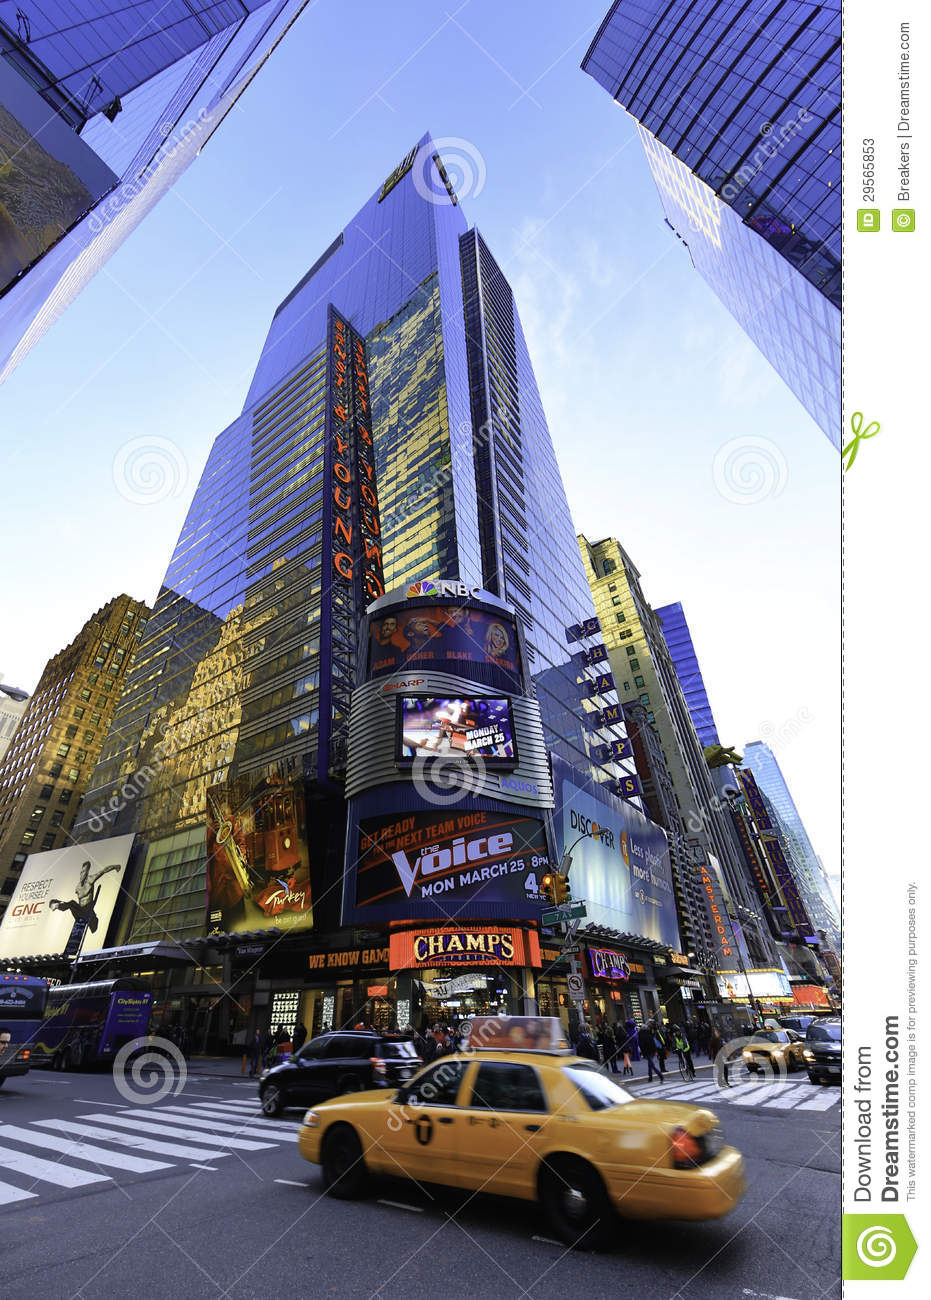 New york manhattan big accounting firm editorial stock for Creative consulting firms nyc